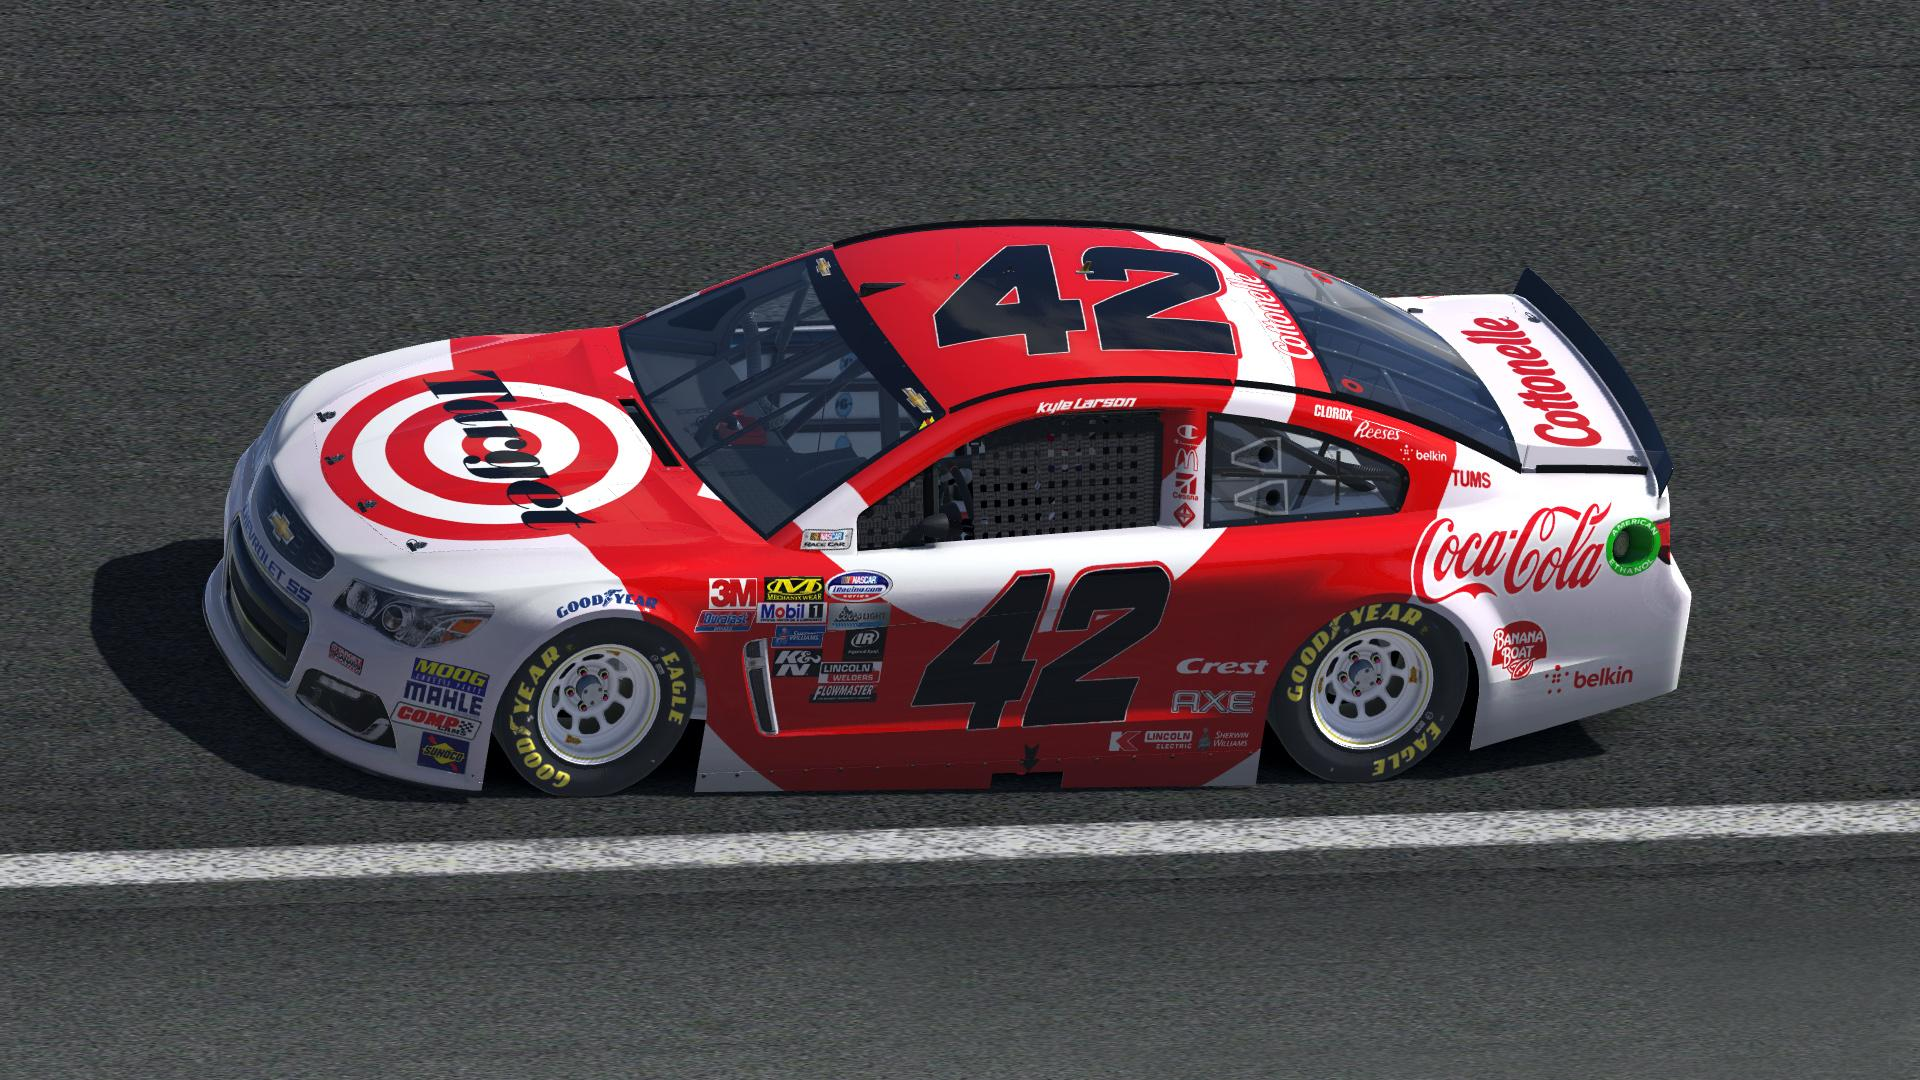 Kyle Larson Throwback 2016 NASCAR Monster Energy Cup Chevrolet SS By Zach Rader